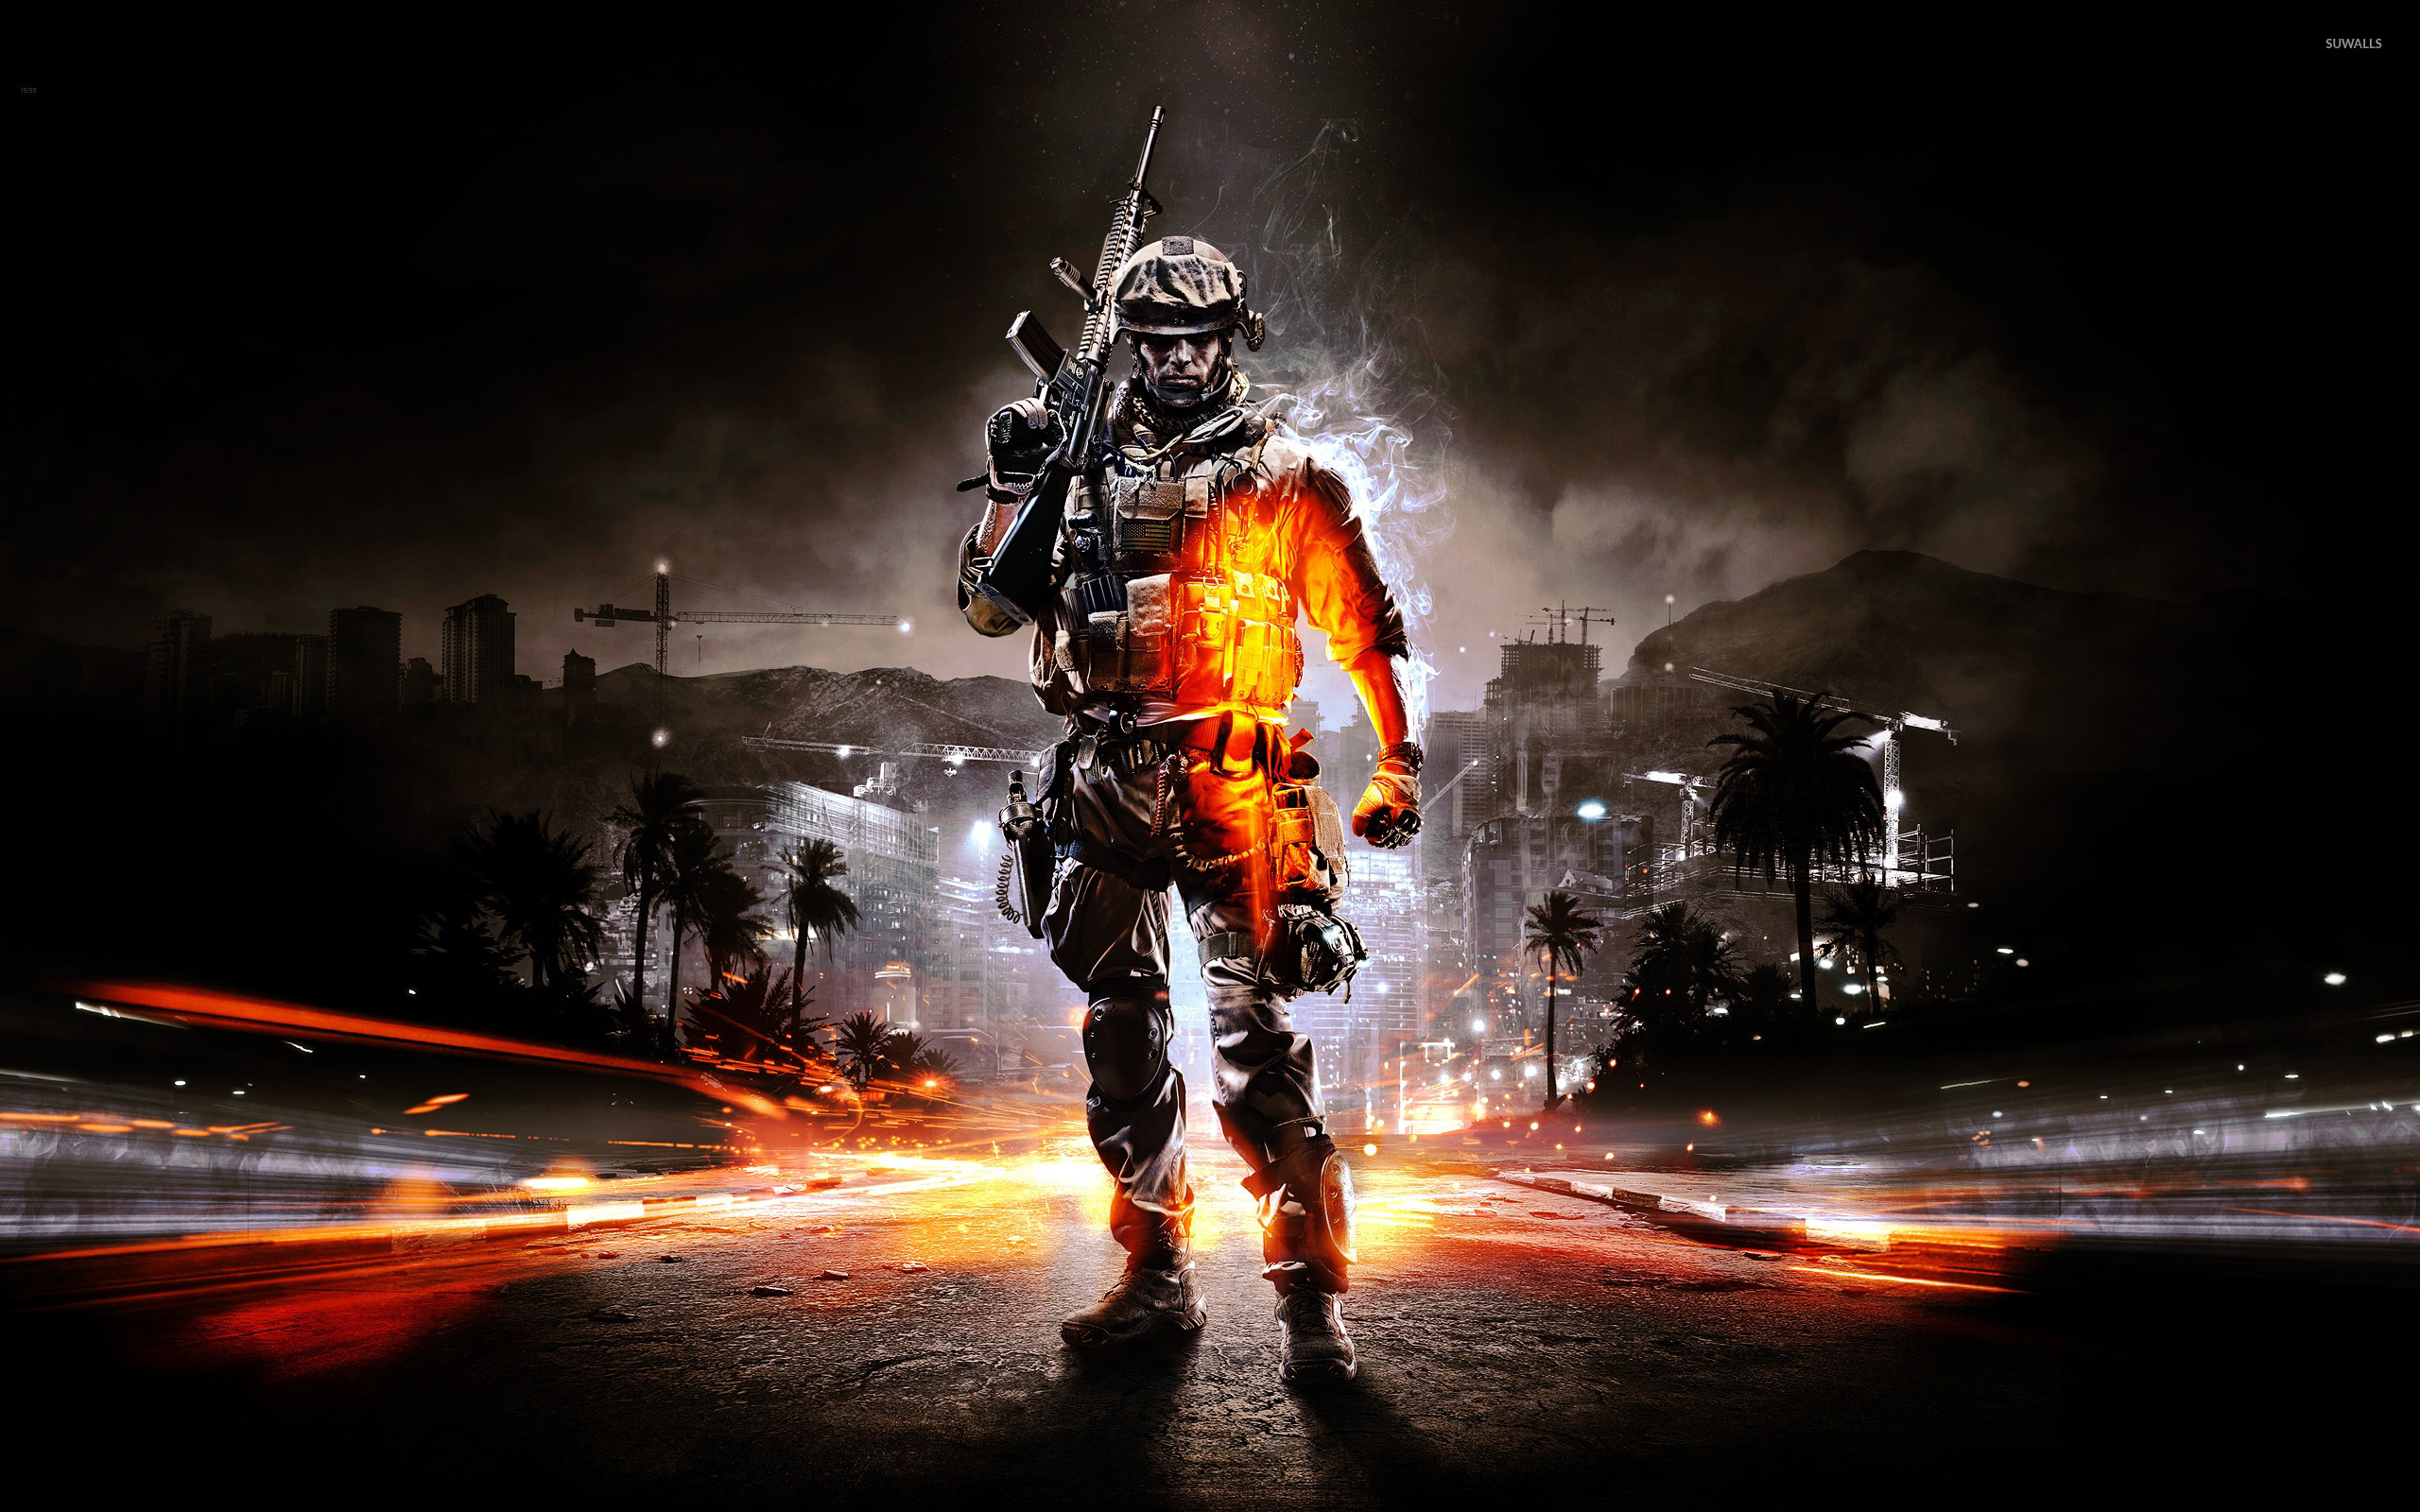 battlefield 3 [15] wallpaper - game wallpapers - #40553